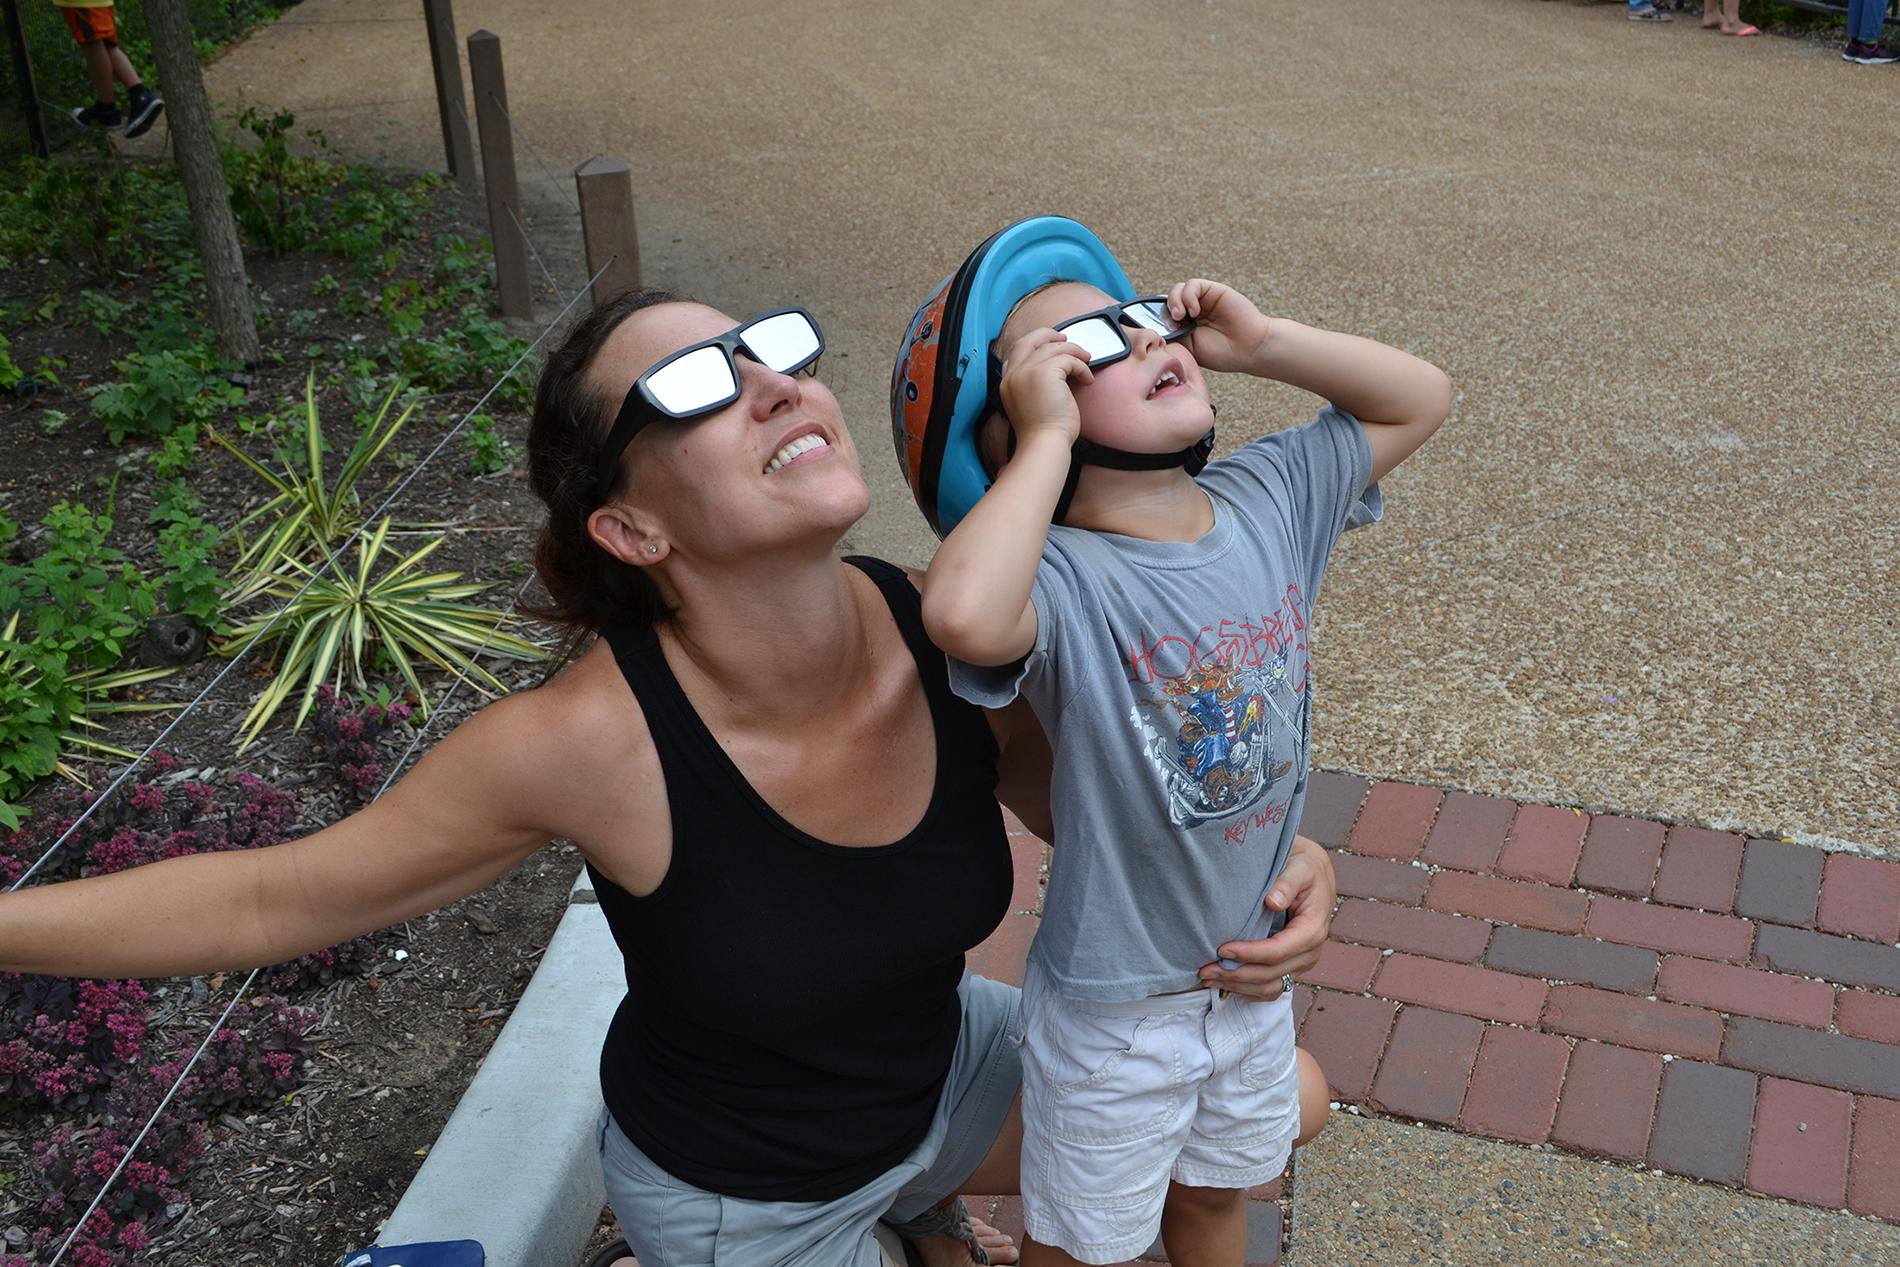 Maria Opdycke and her son, Simm, of Evanston, view the solar eclipse Monday at Lincoln Park Zoo. (Photos by Alex Ruppenthal / Chicago Tonight)